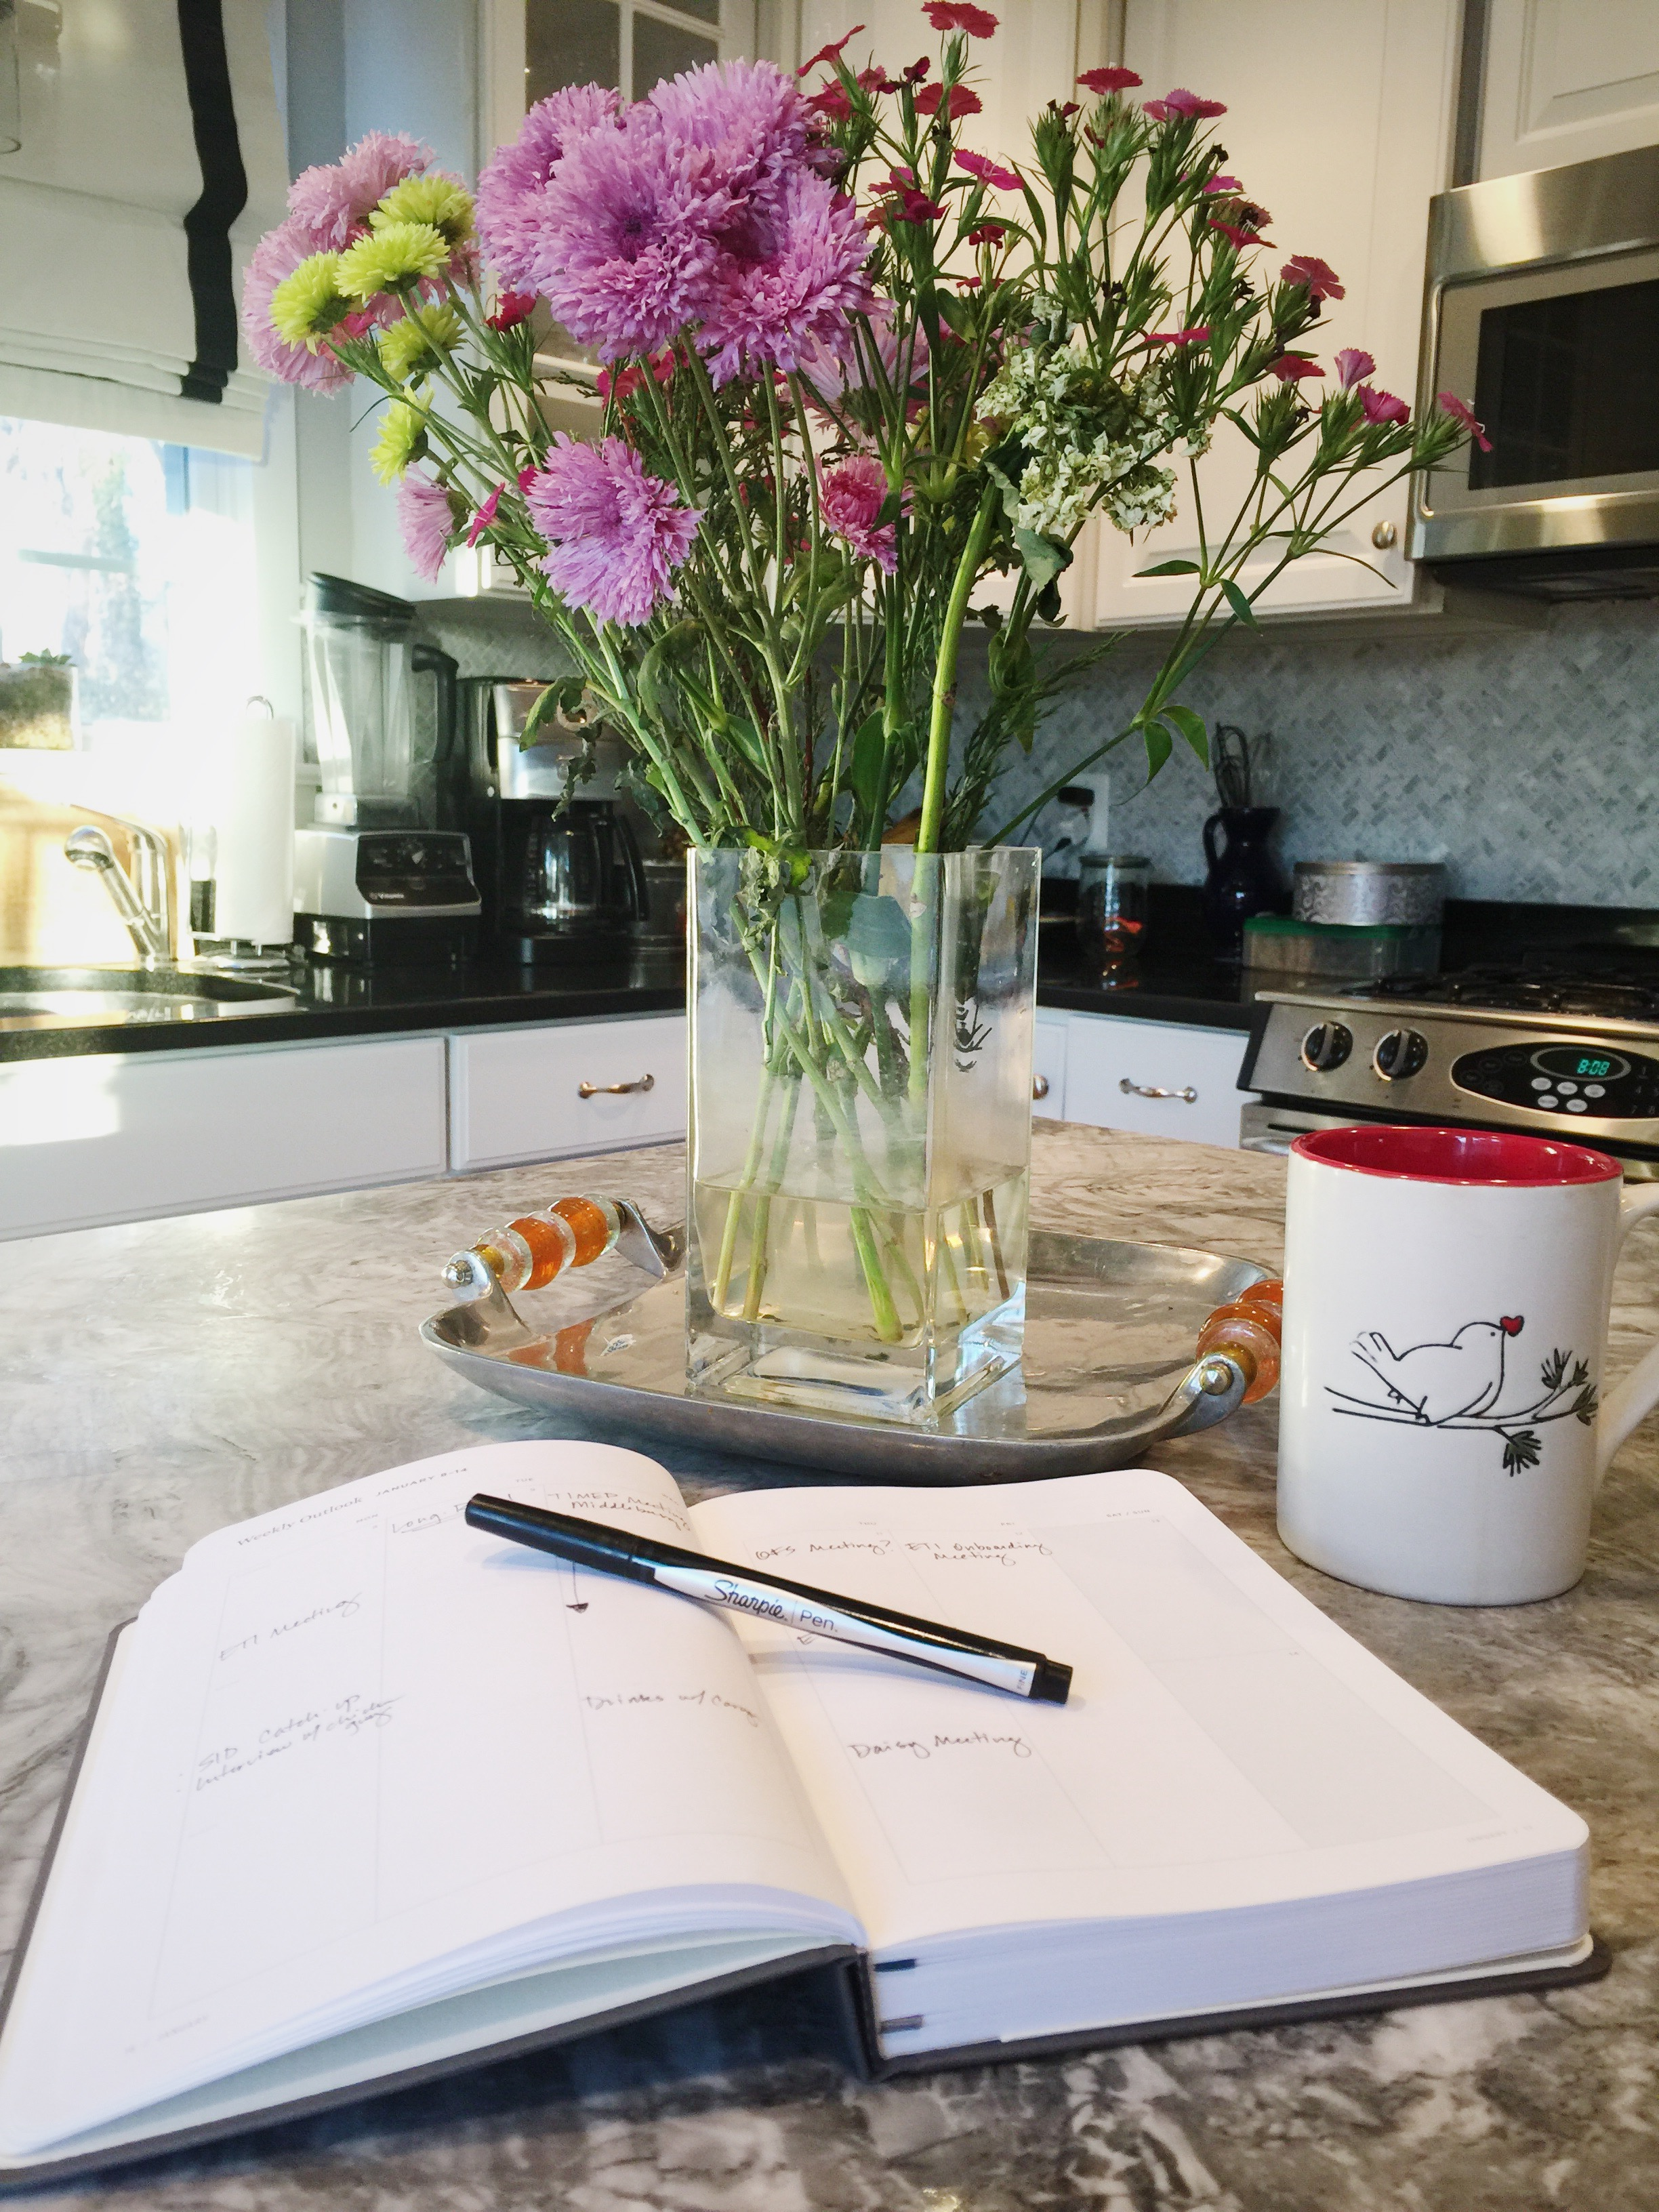 Anything is possible with a good planner and a cup of coffee.